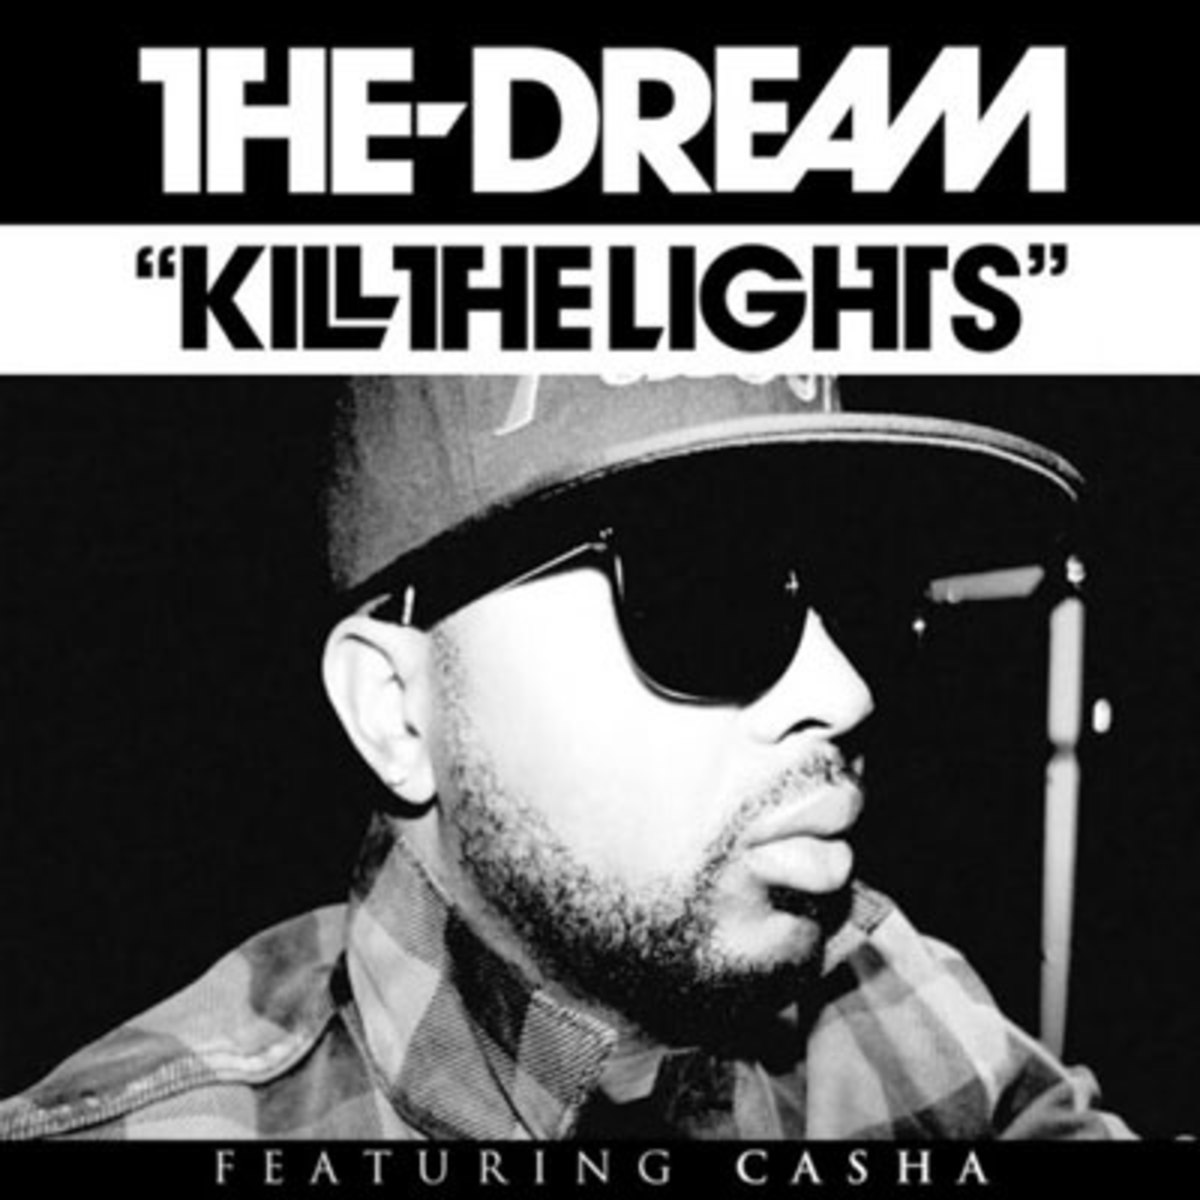 thedream-killthelights.jpg